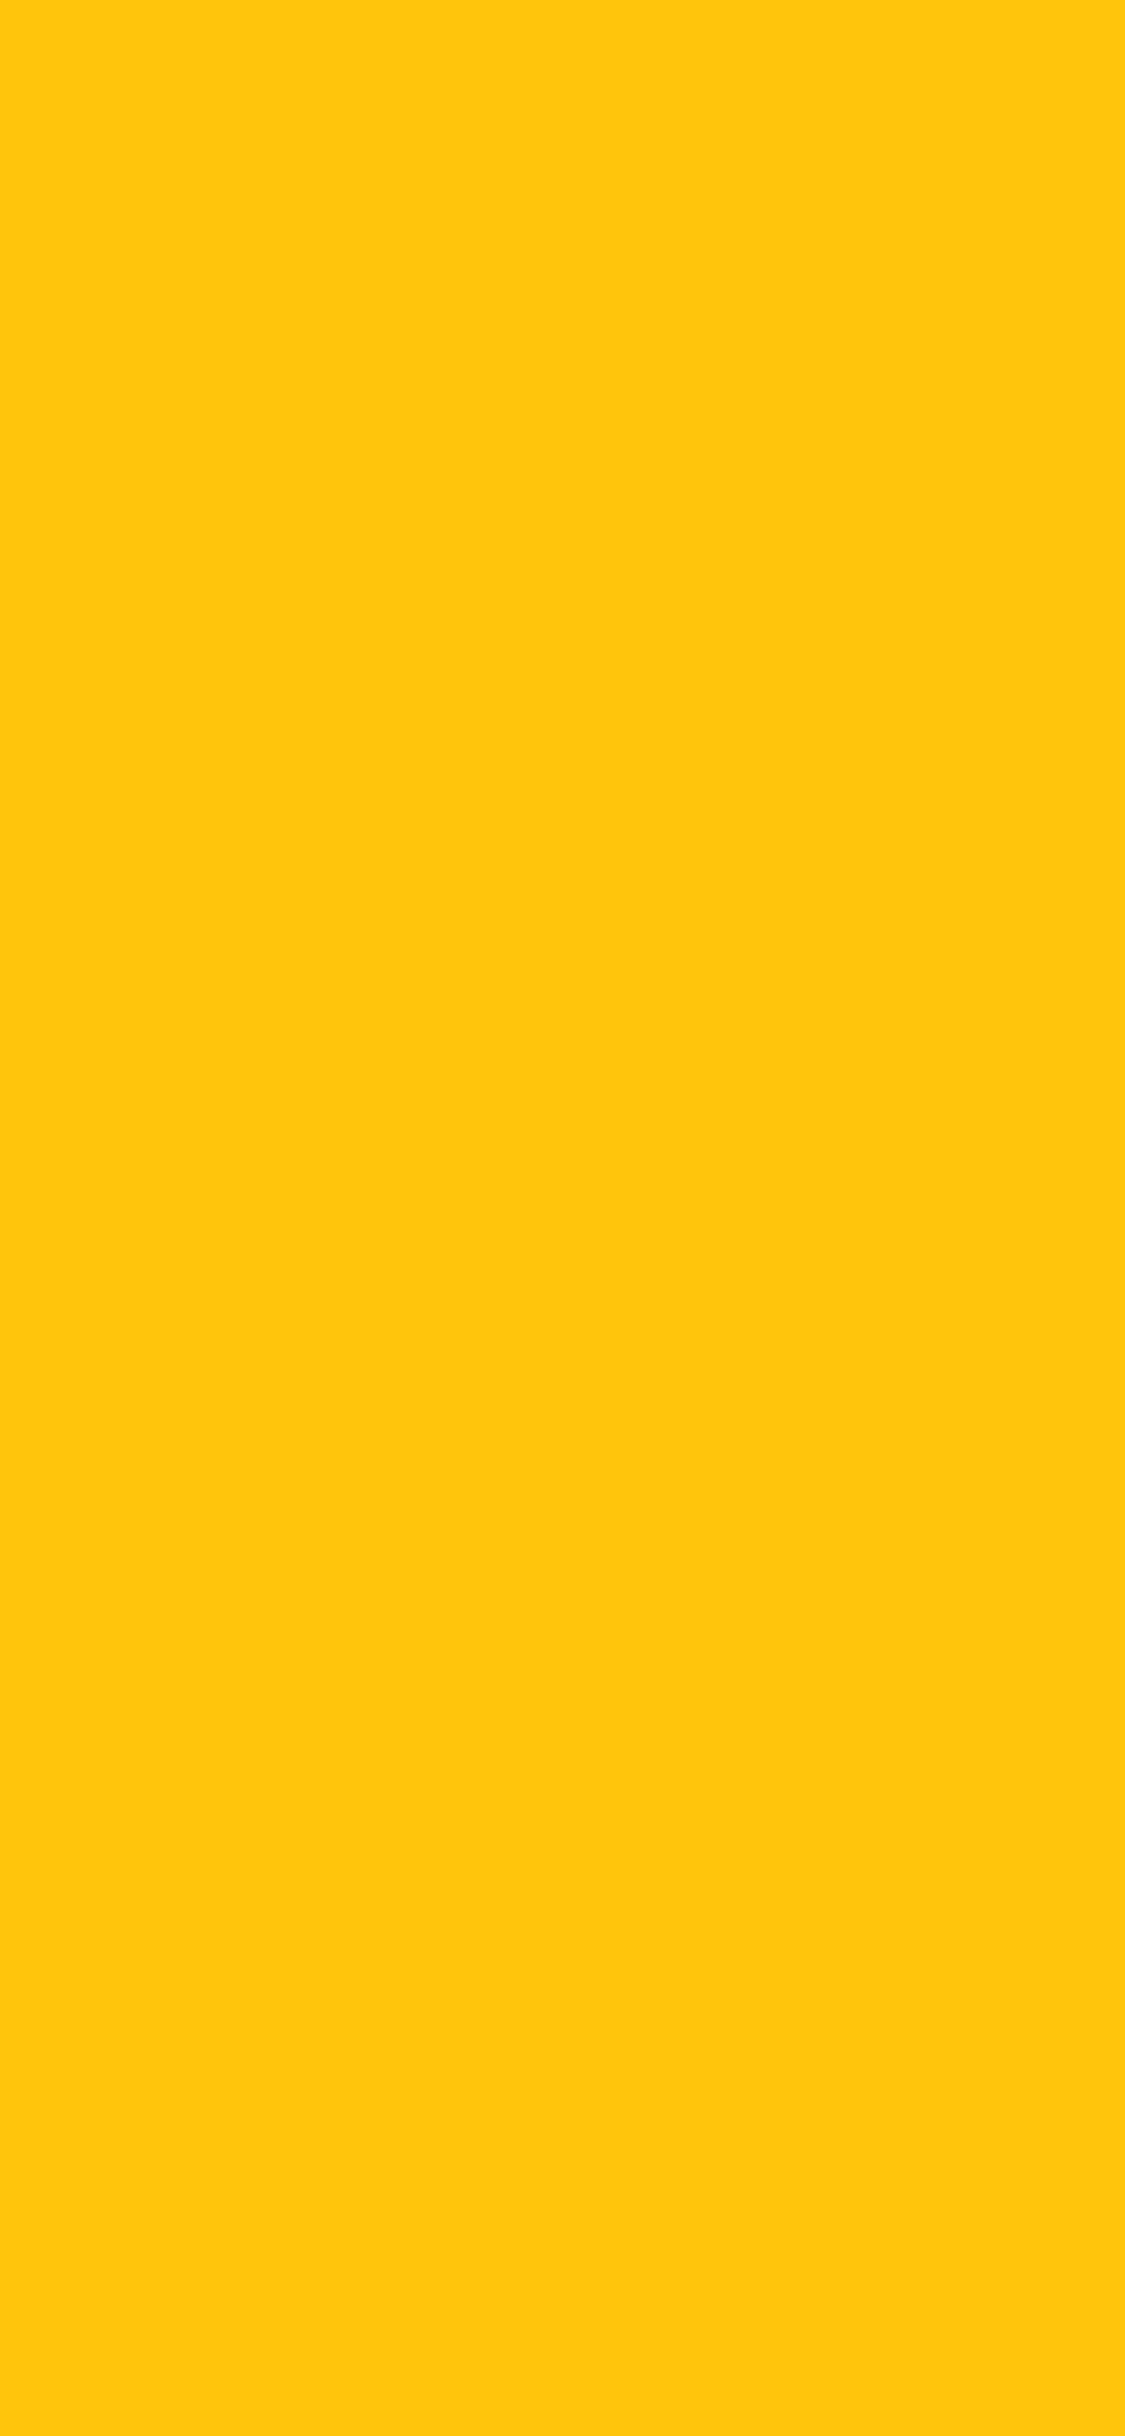 1125x2436 Mikado Yellow Solid Color Background